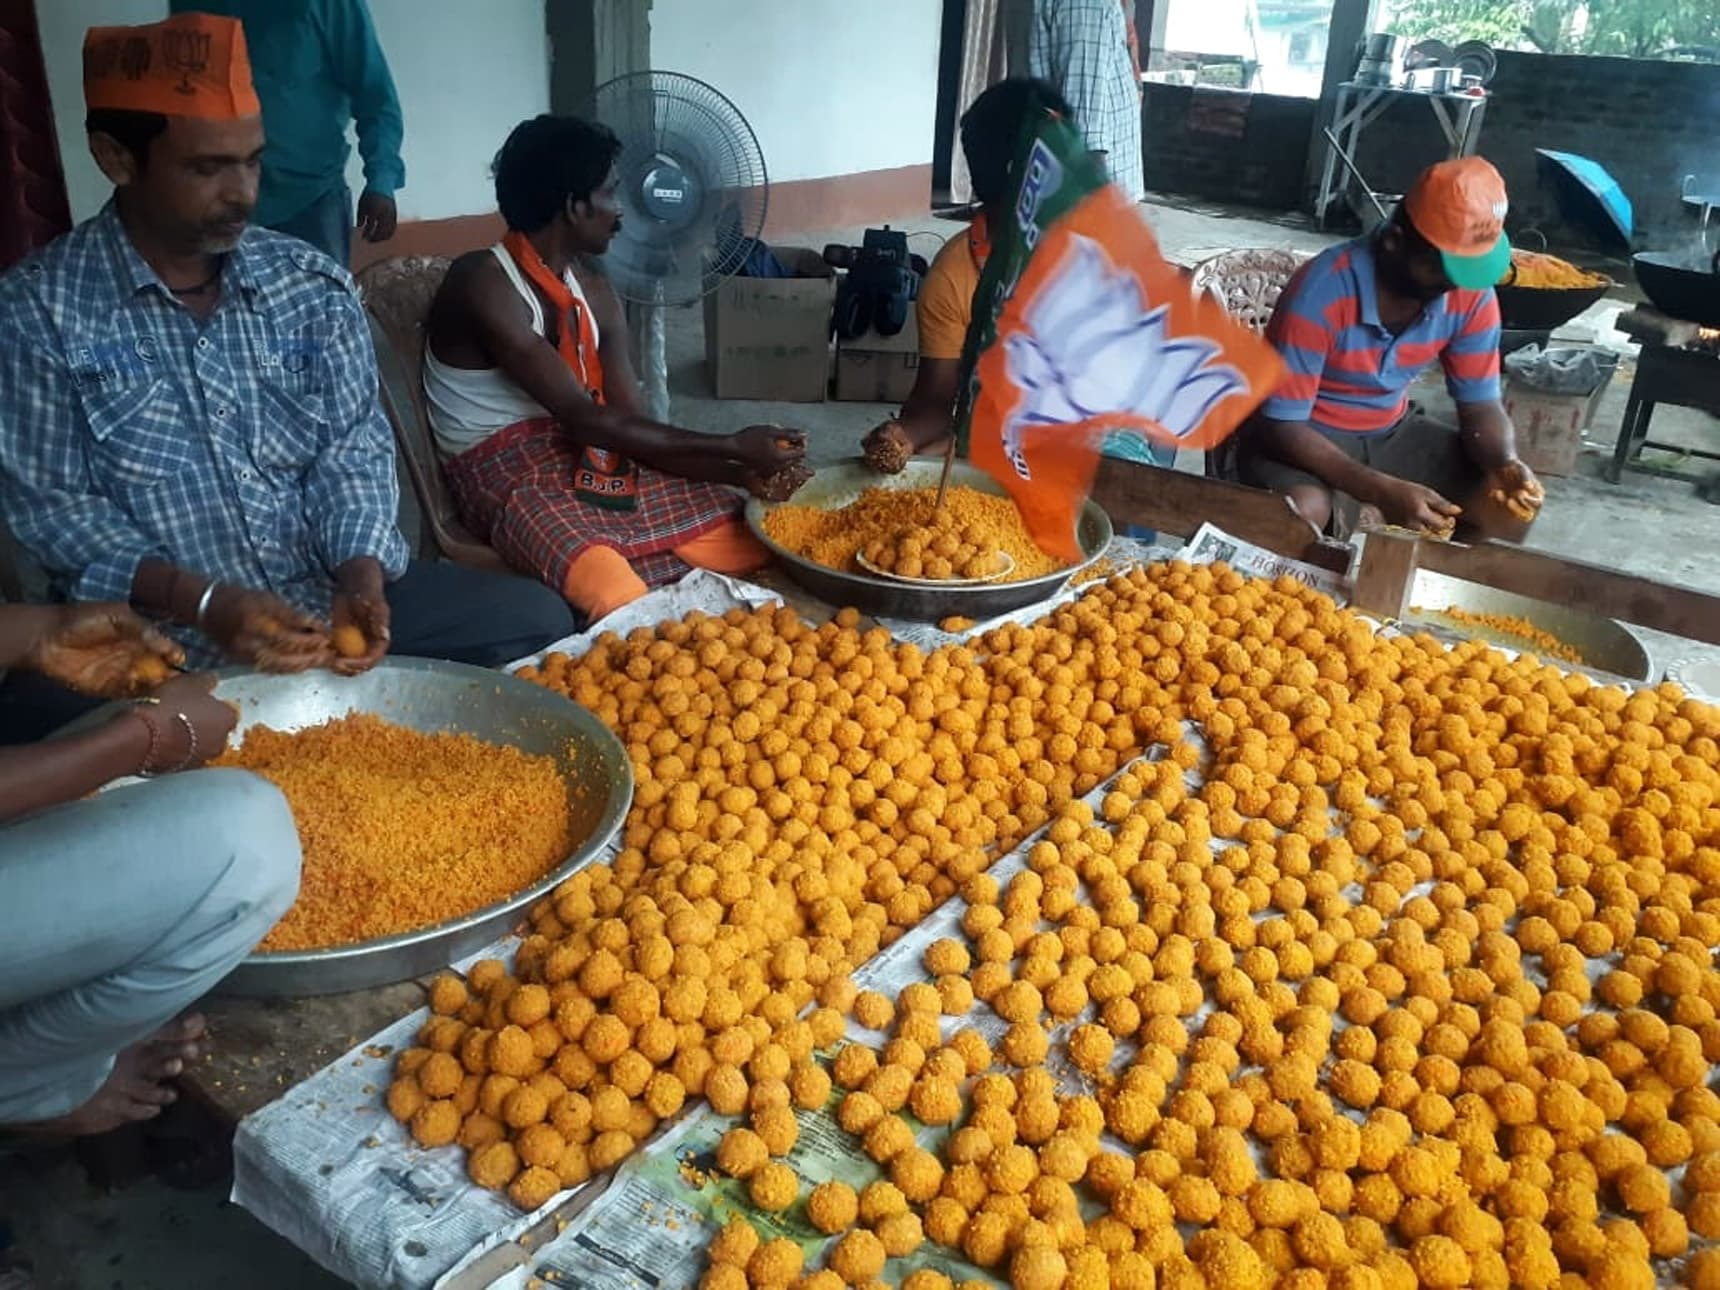 Dibrugarh: Workers wearing BJP caps busy preparing laddus -sweets- at a workshop on the eve of counting for 2019 Lok Sabha polls in Dibrugarh, Assam on May 22, 2019. (Photo: IANS)